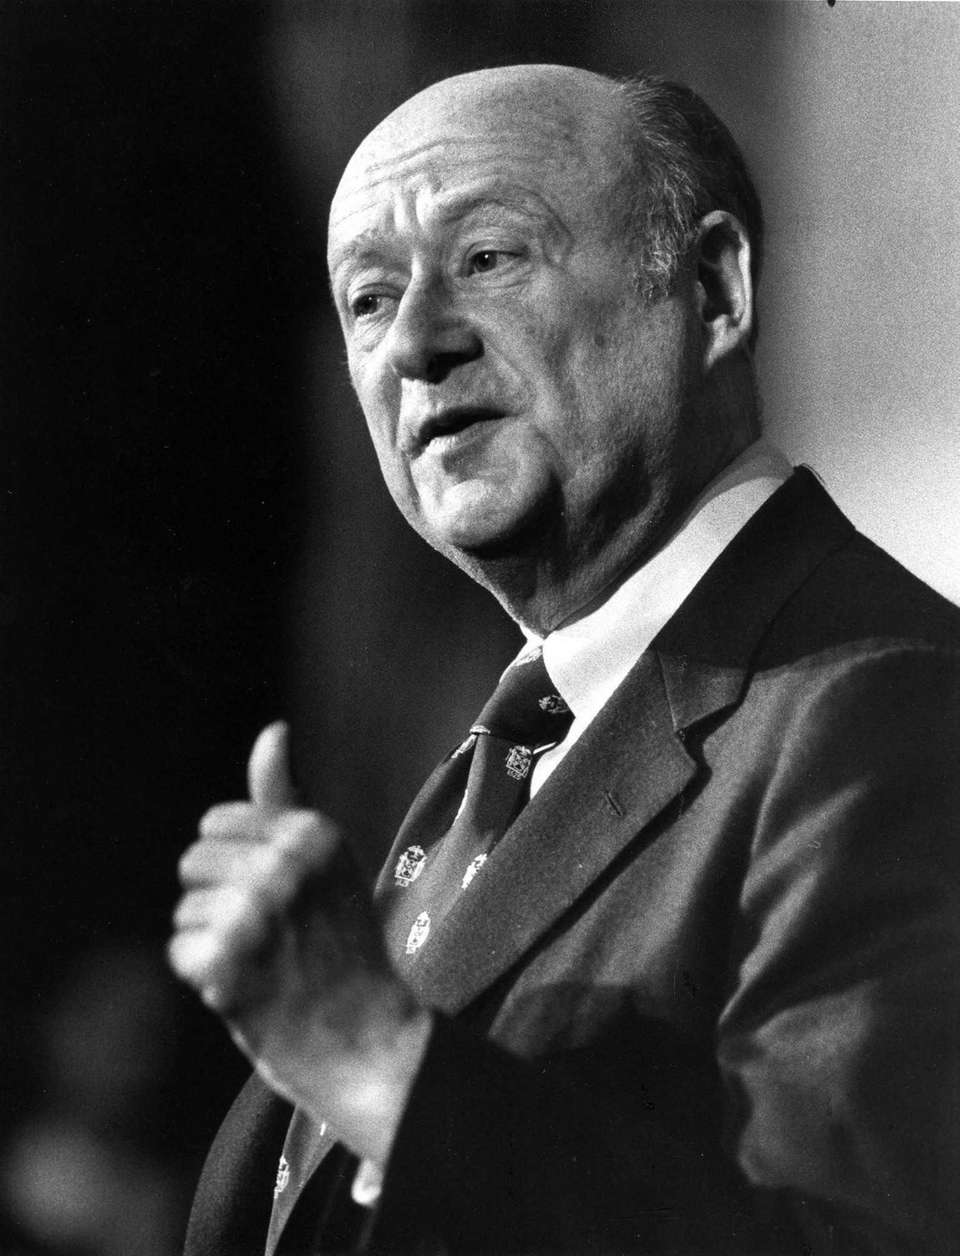 Mayor Ed Koch at the conclusion of the